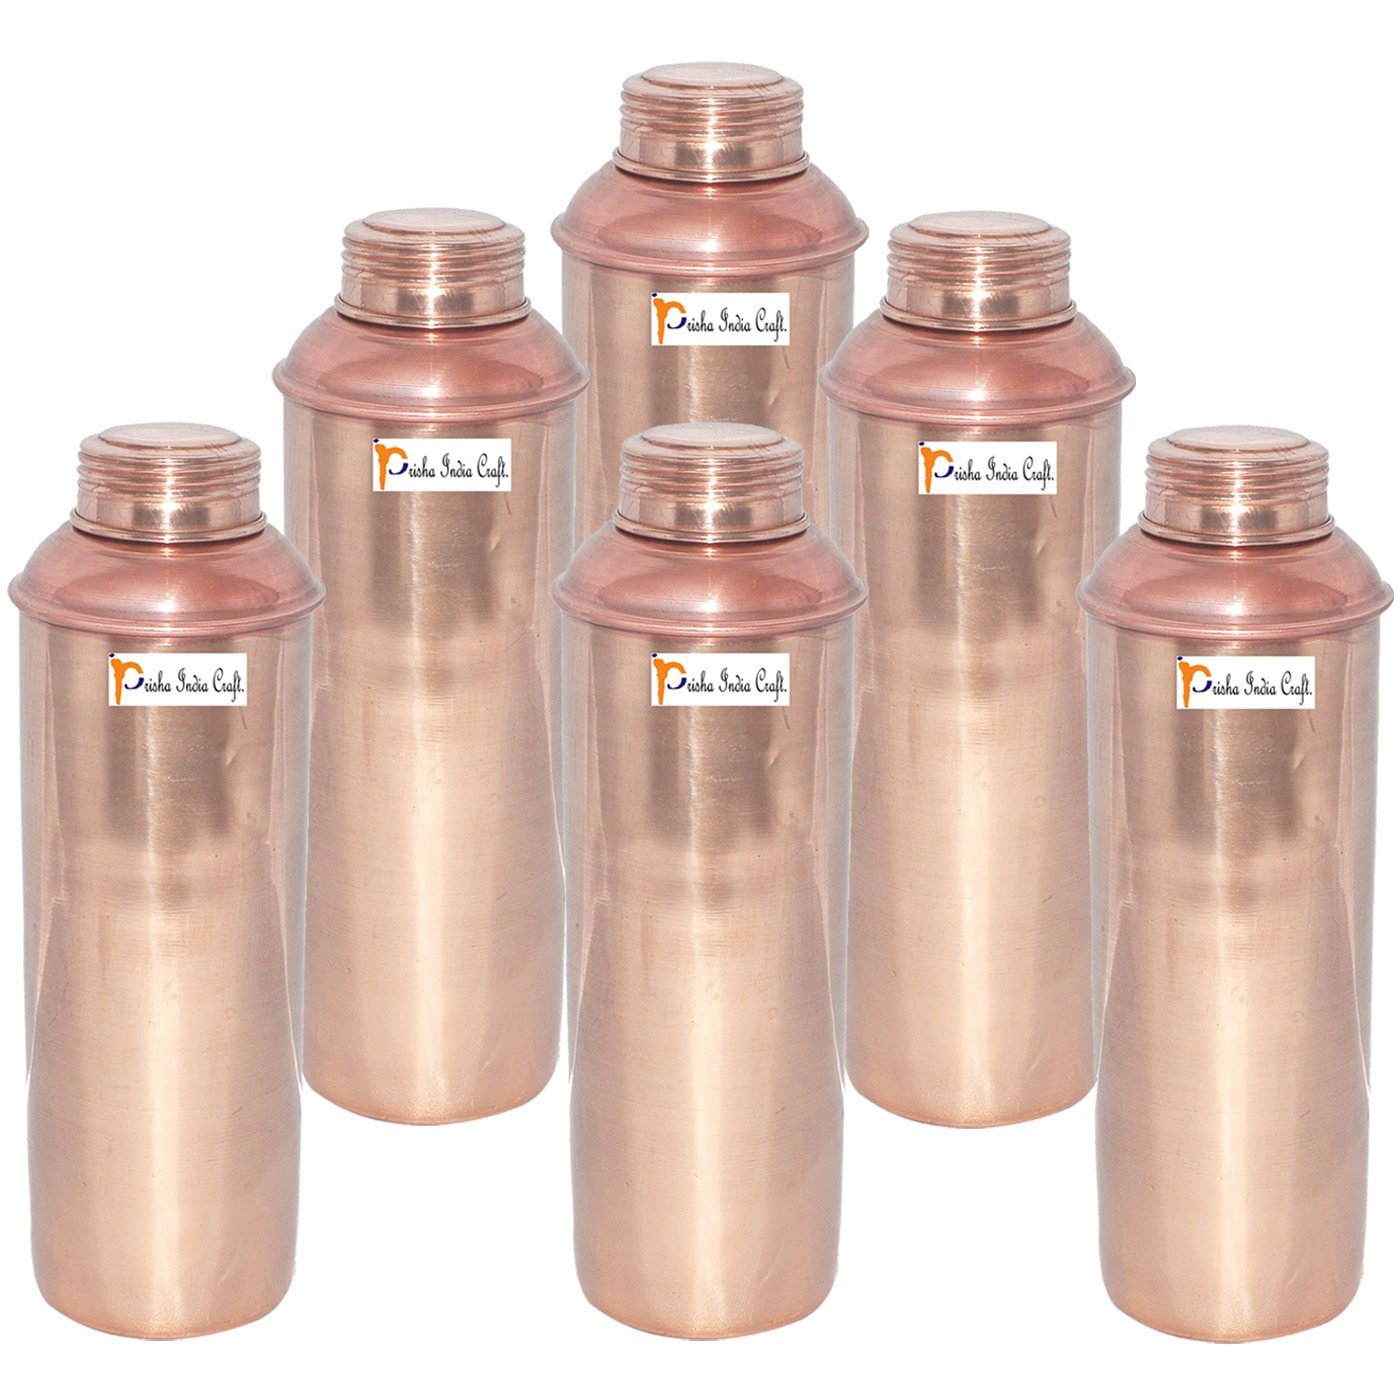 750 ML / 25 oz - Set of 6 - Prisha India Craft ® CHRISTMAS GIFT Pure Copper Water Bottle Pitcher for Ayurvedic Health Benefits - Handmade Copper Water Bottles